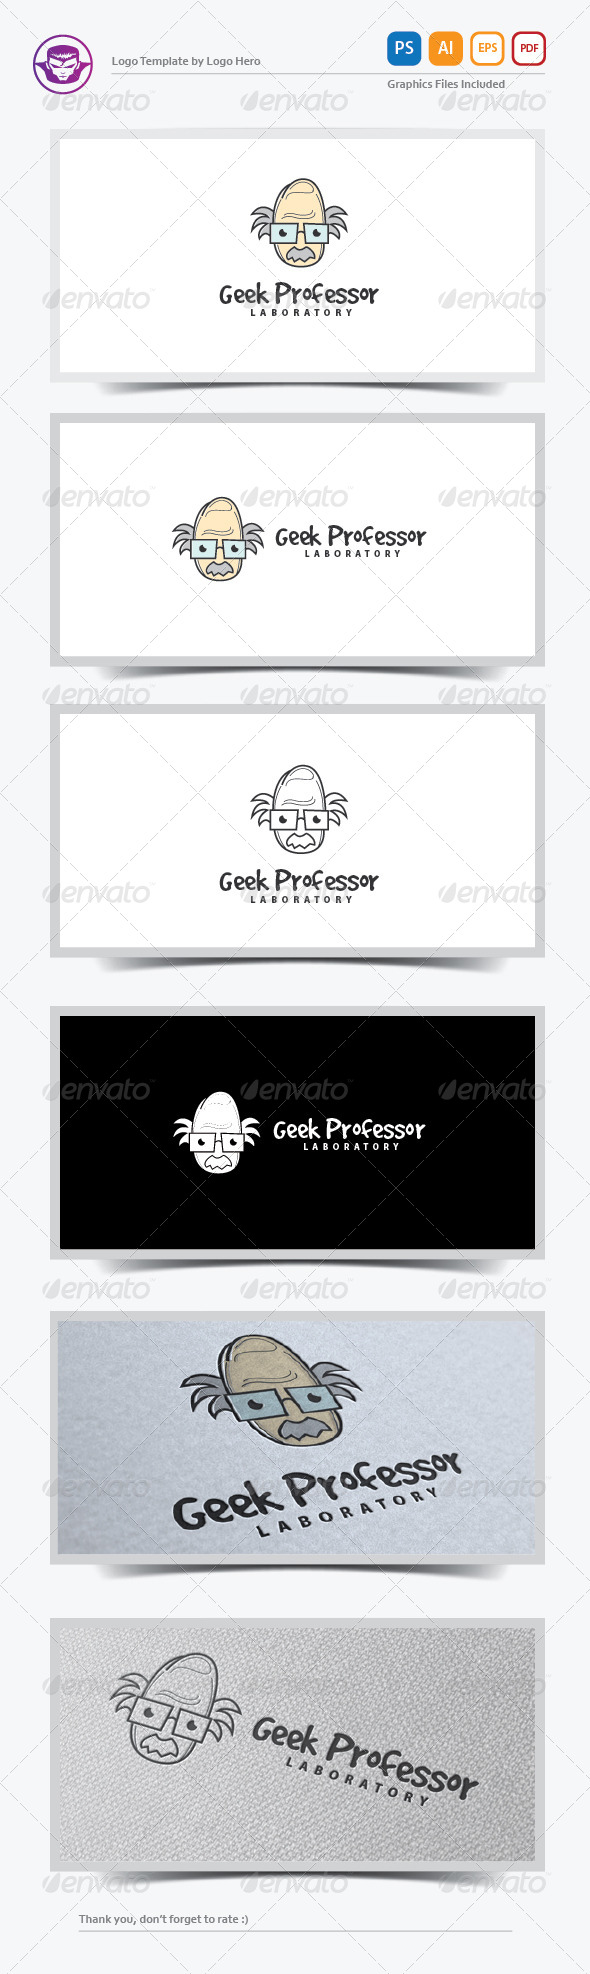 GraphicRiver Geek Professor Logo Template 7926760